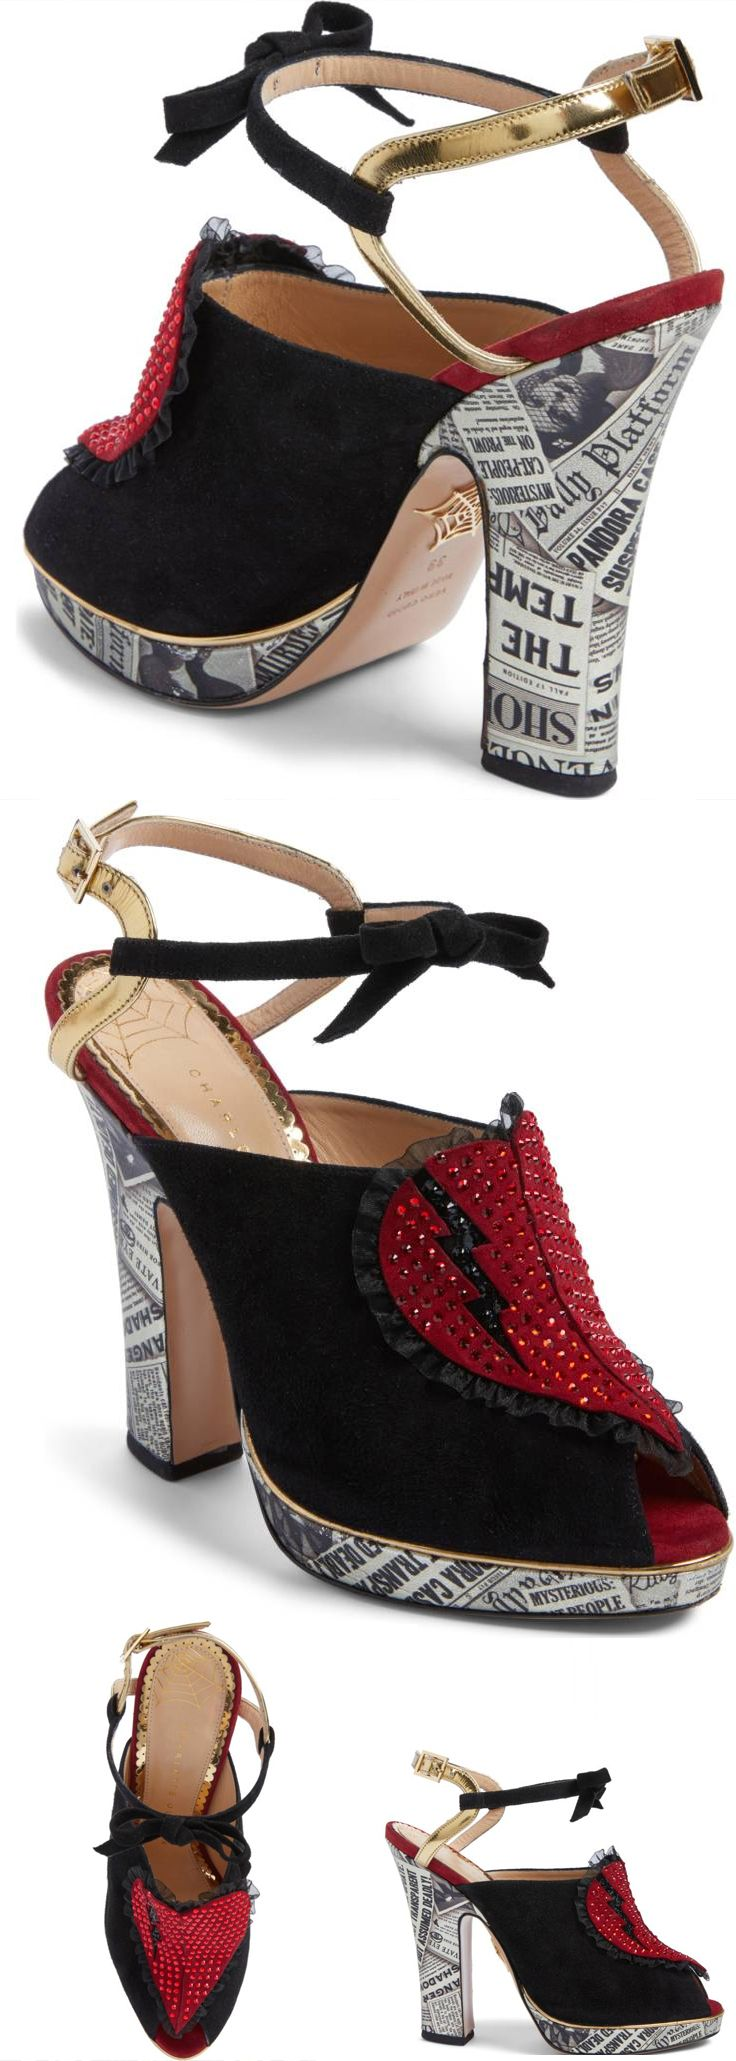 Just in at Nordstrom Women's Charlotte Olympia Killer Heels Sandal. This mixed-media sandal—in a modern interpretation of a 1940s silhouette takes iconography of the film-noir world and adds her signature playfulness. Newspaper print at the heel and platform make for statement-worthy accents, while a broken-hearted appliqué shimmers on the vamp. Halloween outfit or Valentines shoe maybe. Gifts for her? #shoes #shoesdaytuesday #affiliate #new #killerheels #halloween #valentines #giftsforher